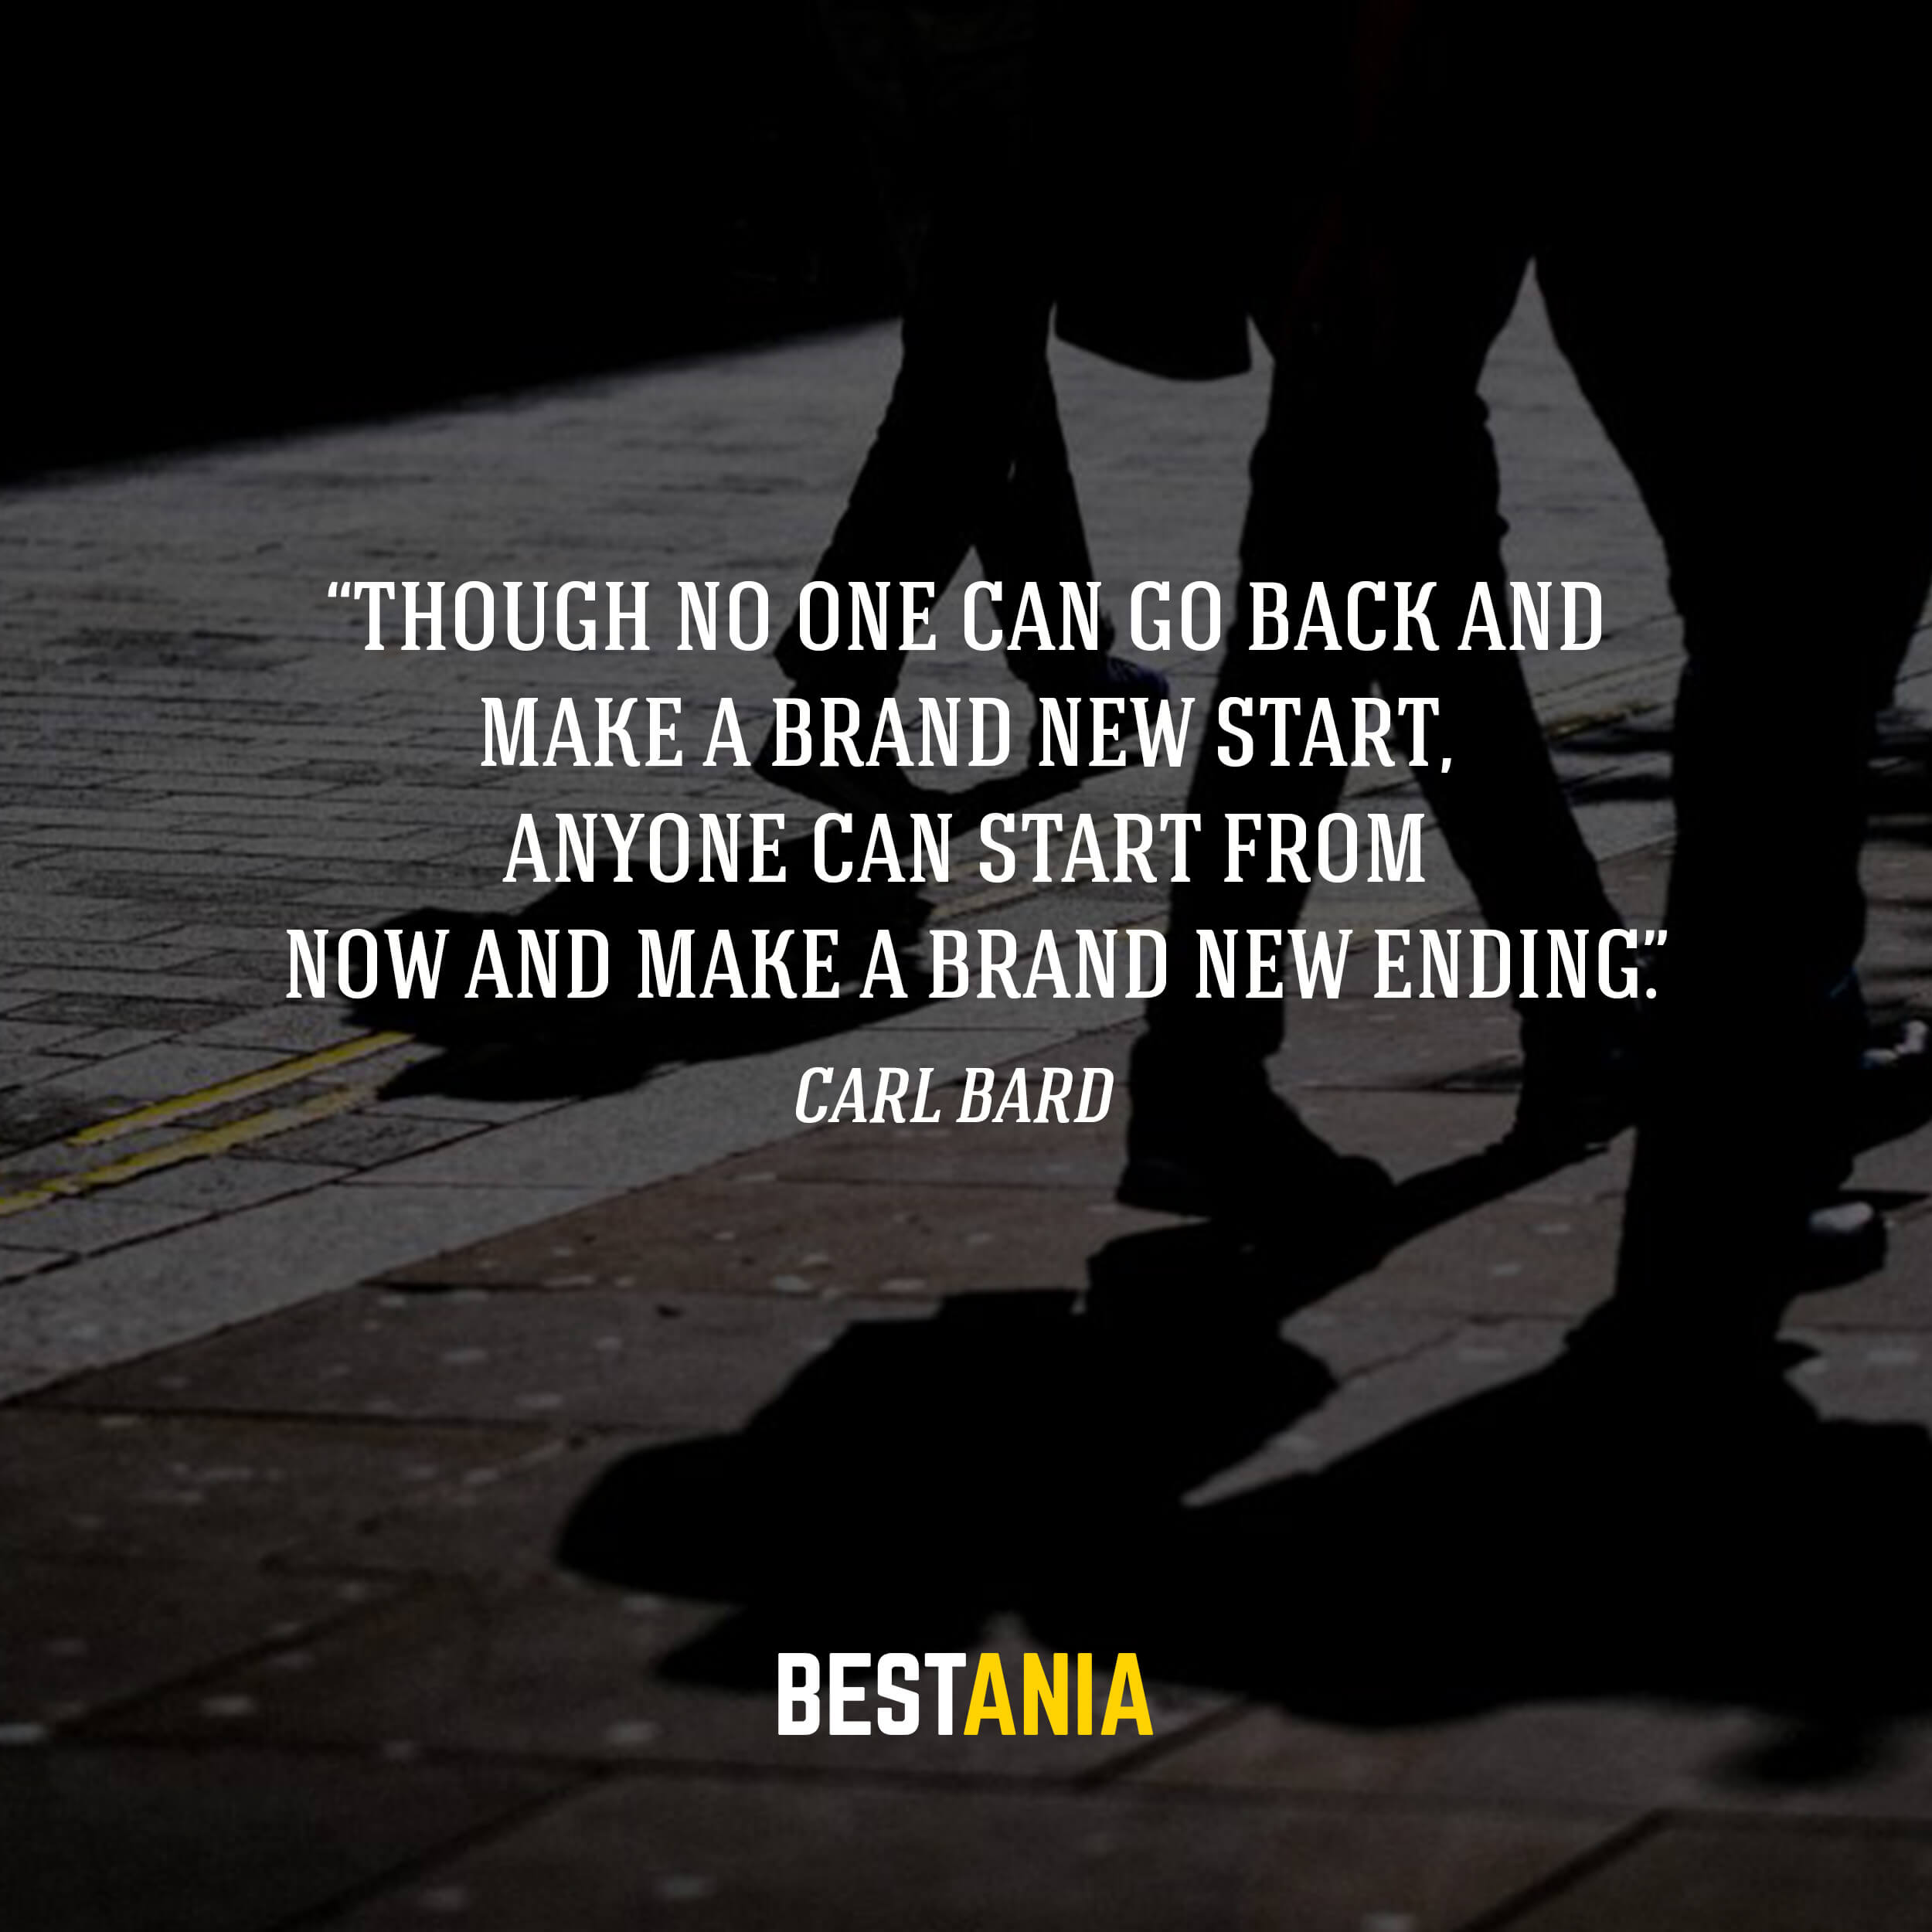 """""""Though no one can go back and make a brand new start, anyone can start from now and make a brand new ending."""" – Carl Bard"""